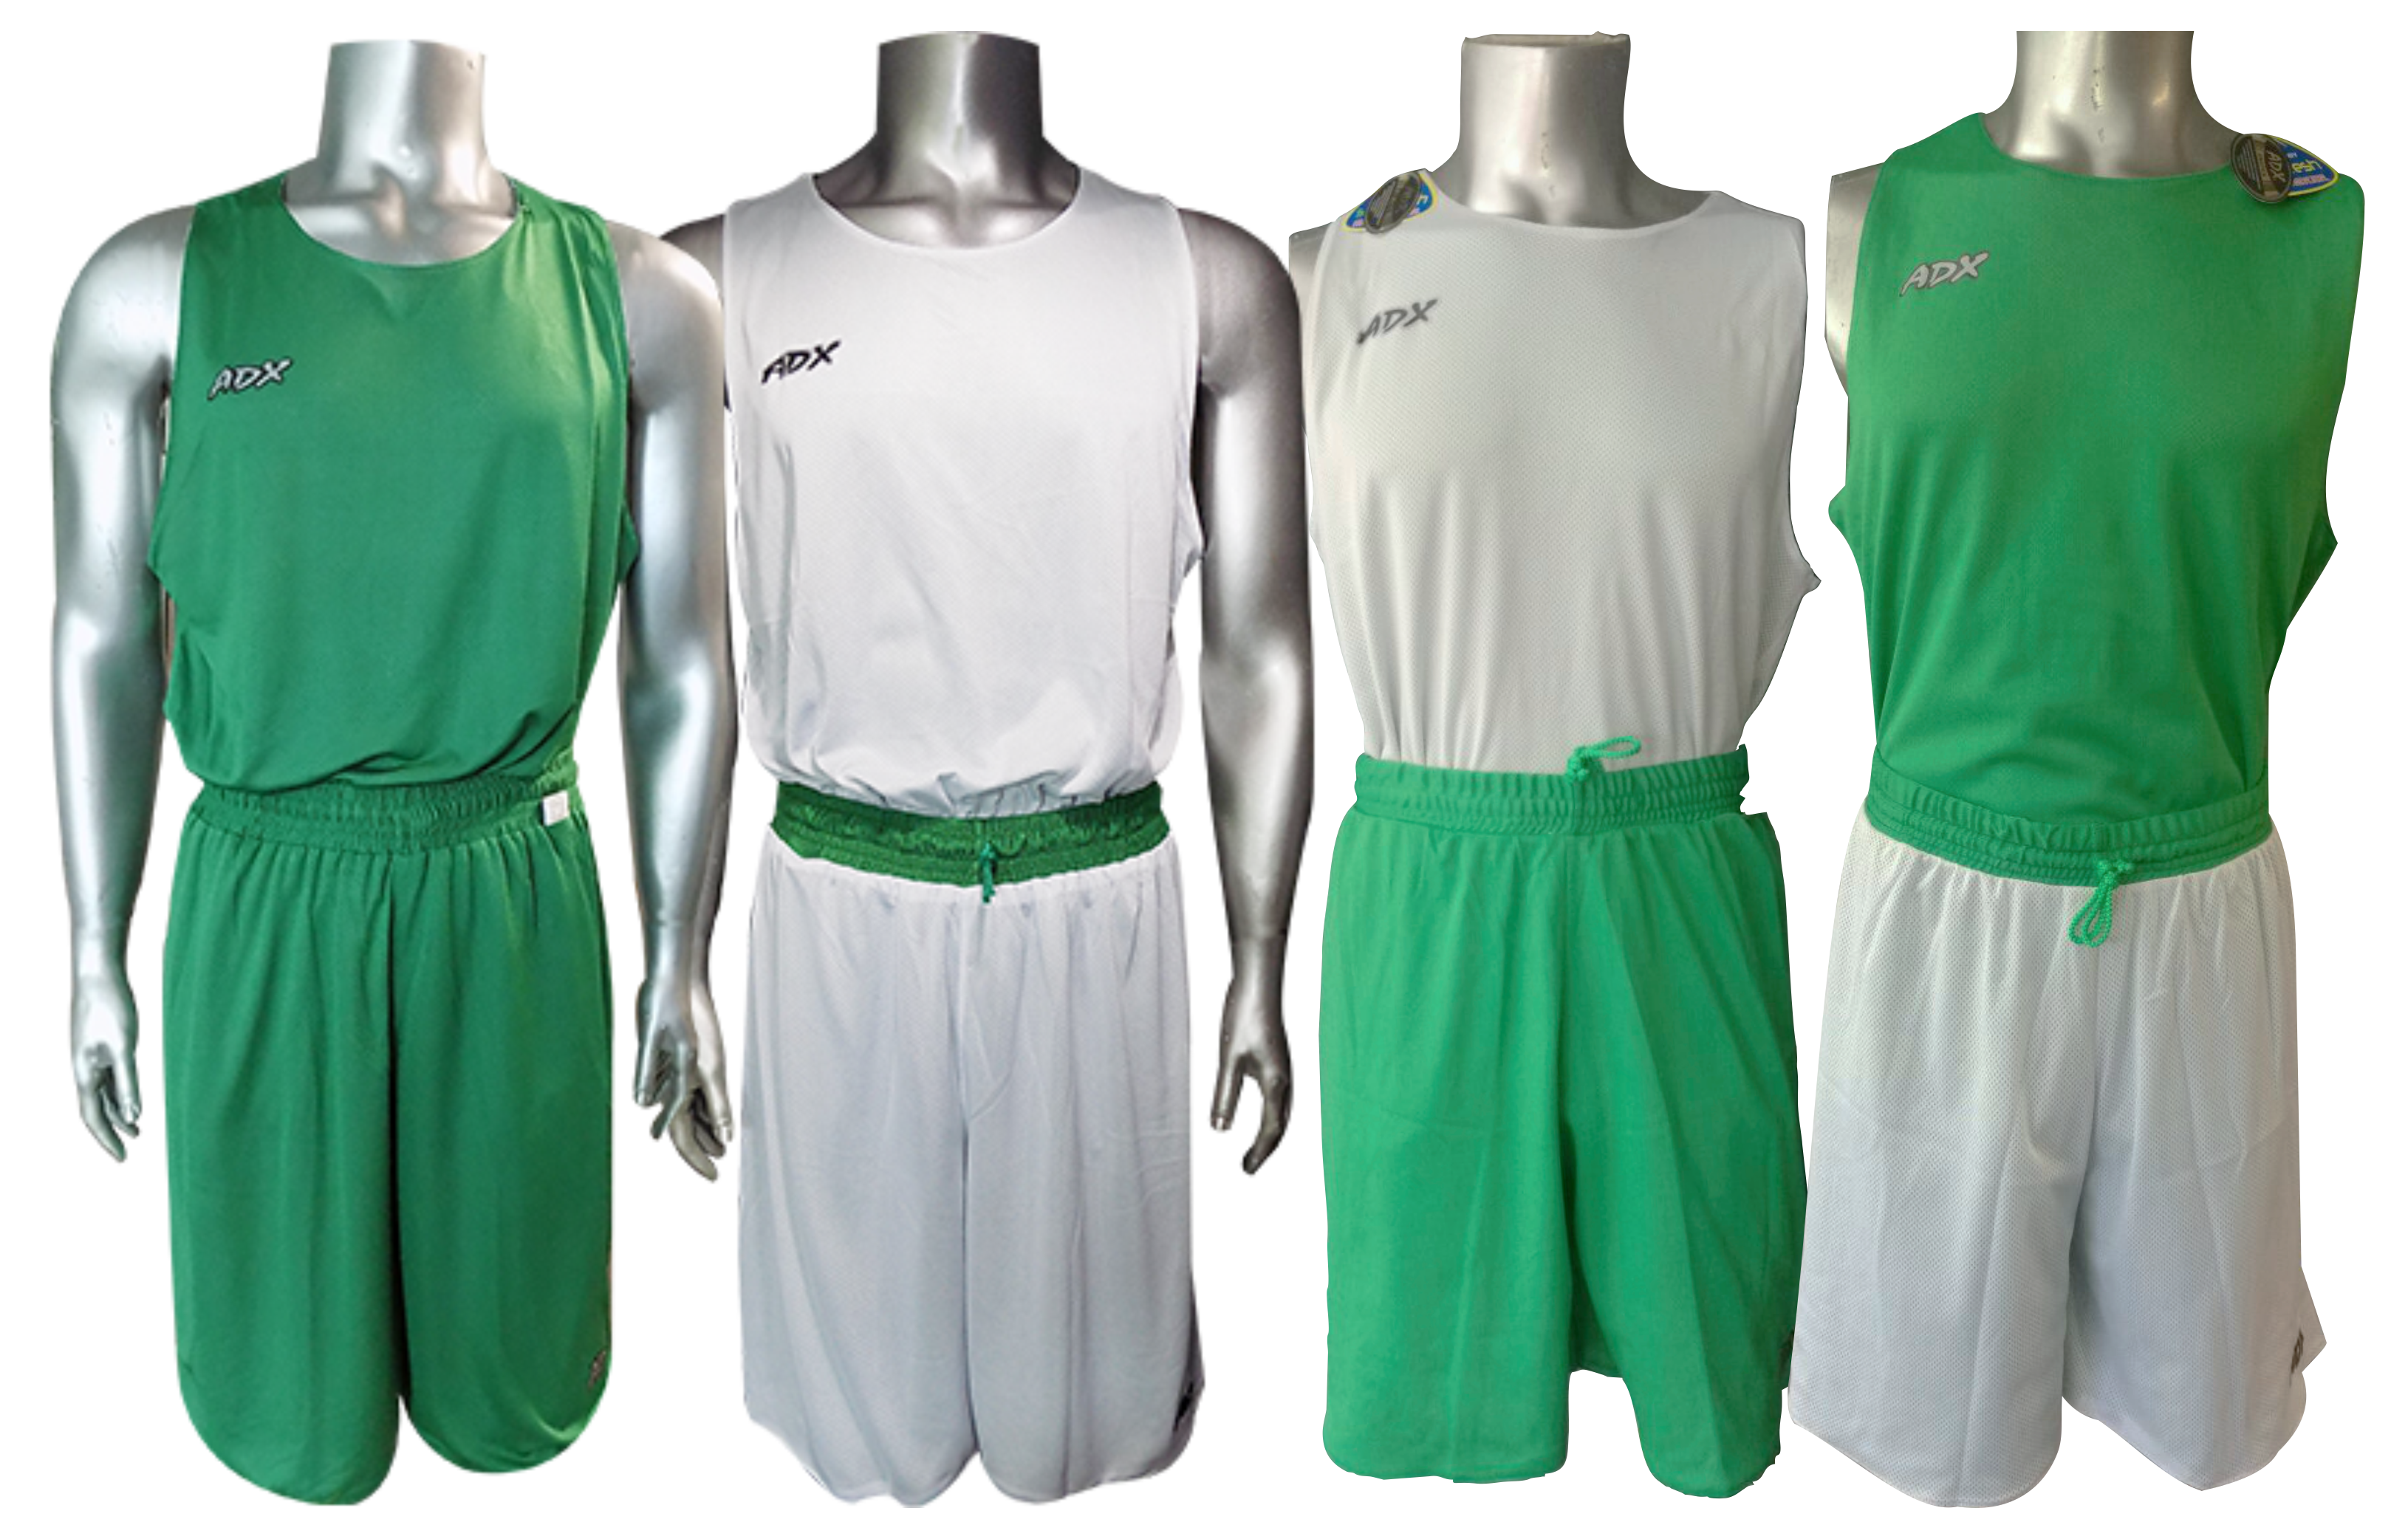 Uniforme Basquet Azul Turquesa Con Blanco Doble Vista: Uniforme ADX Doble Vista Verde/Blanco